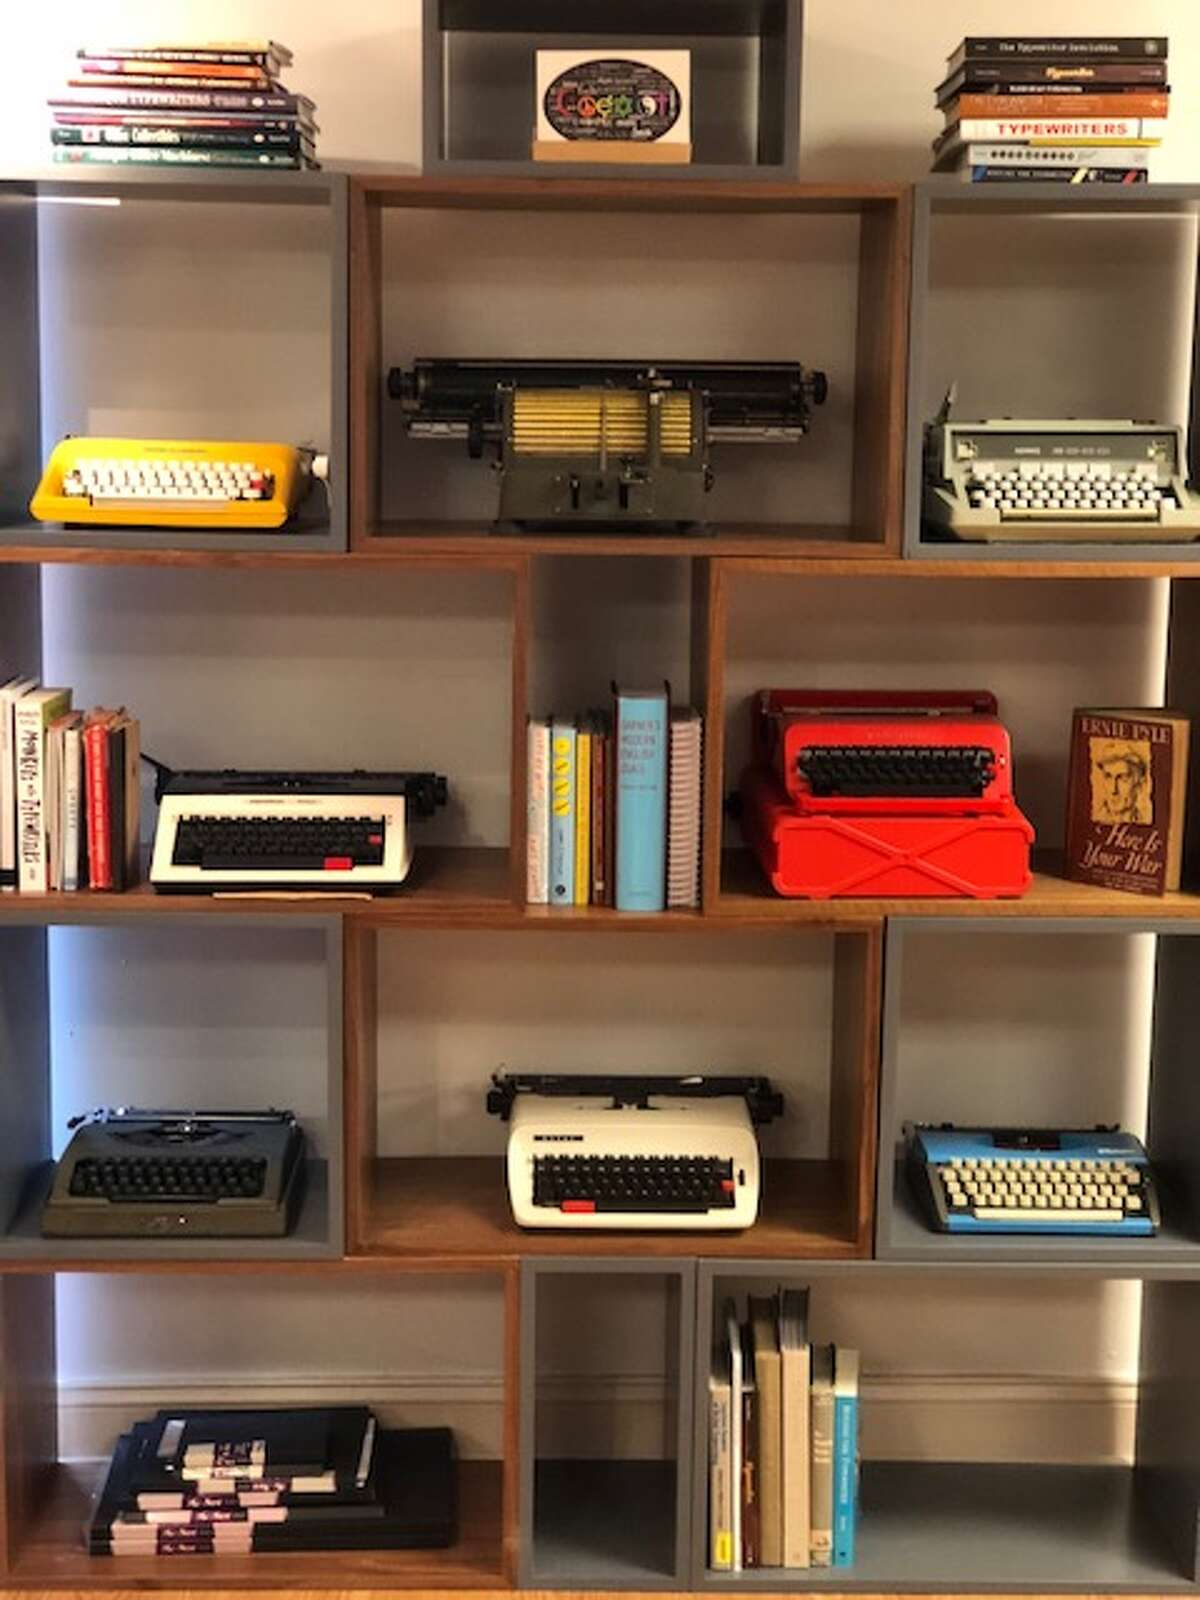 Backspace Westport had its soft opening on Feb. 2. A grand opening event is set for June 23, also known as National Typewriter Day.